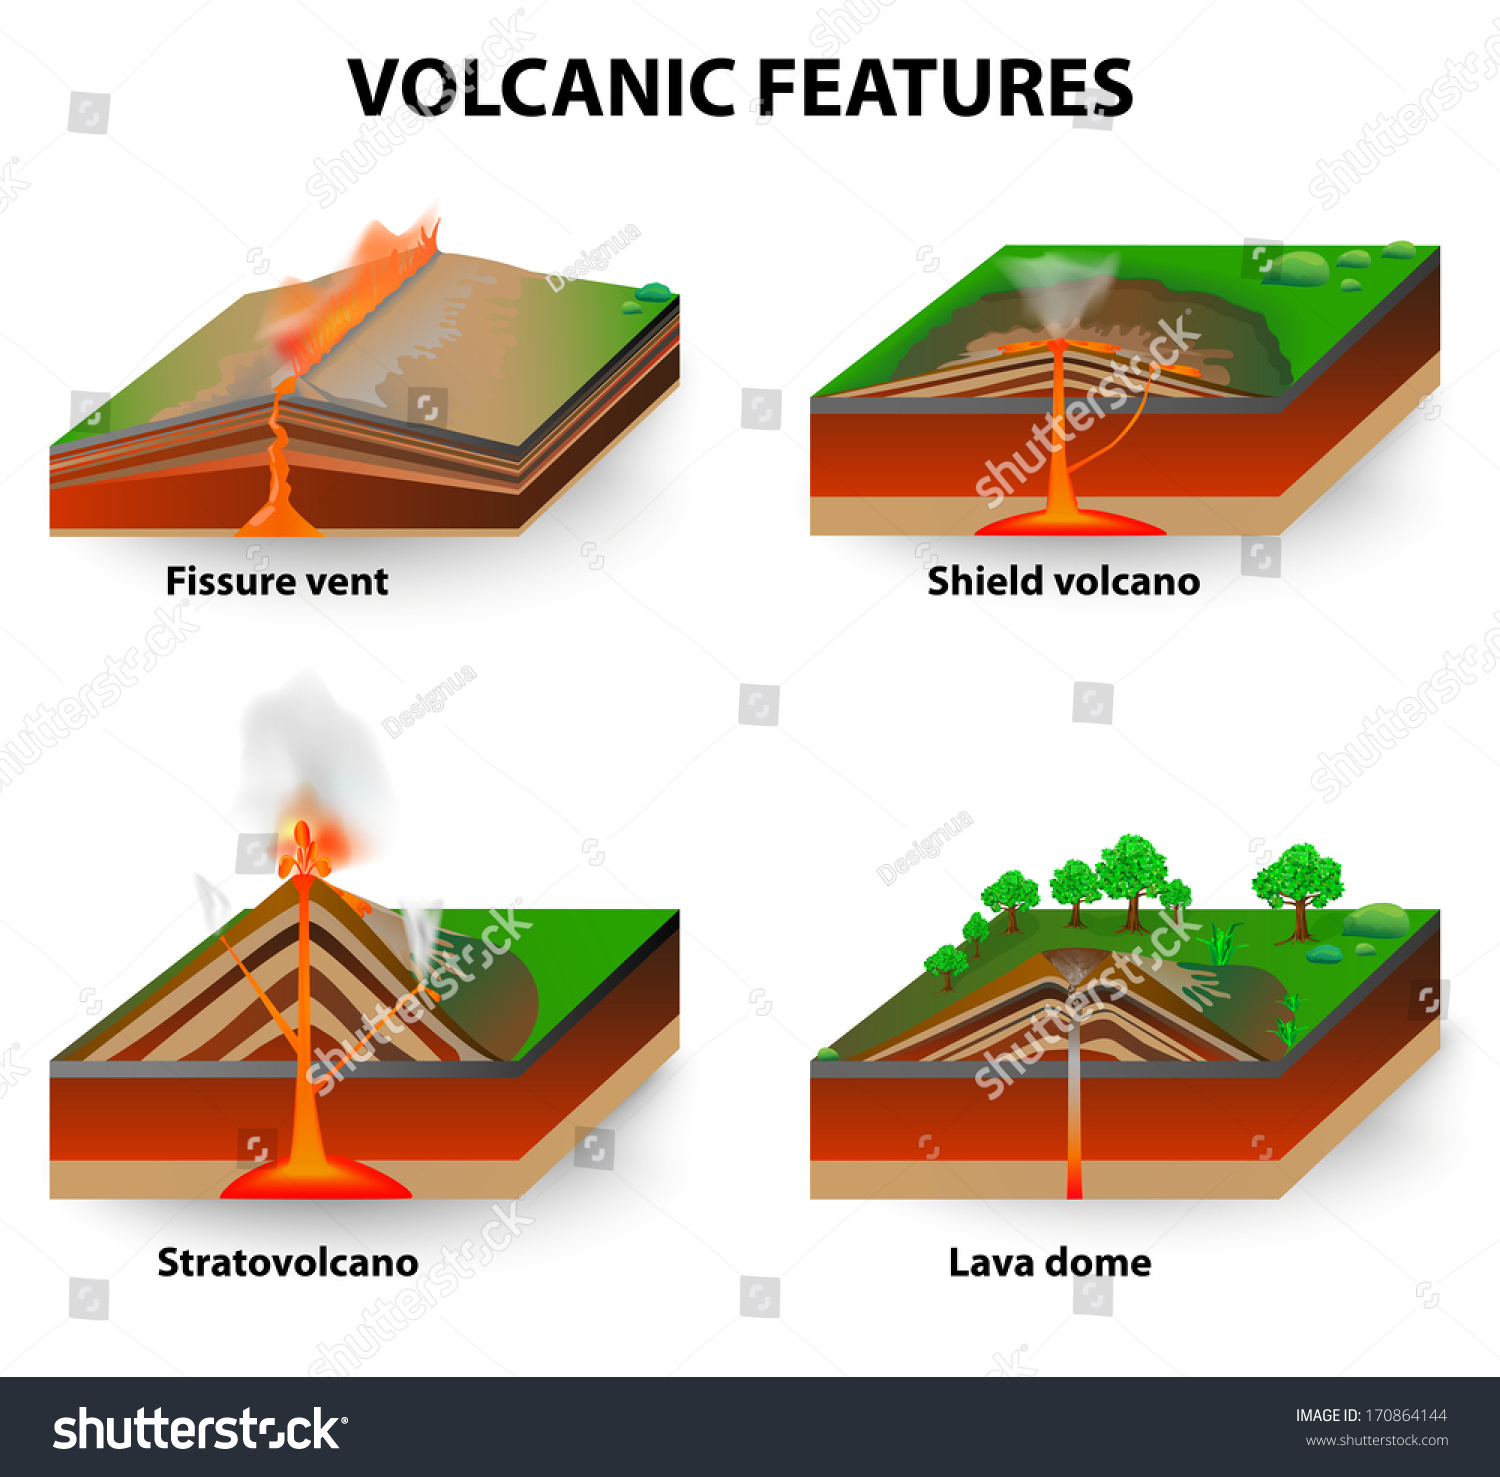 inside volcano diagram vent jazzmaster wiring volcanic features fissure vents shield volcanoes stock